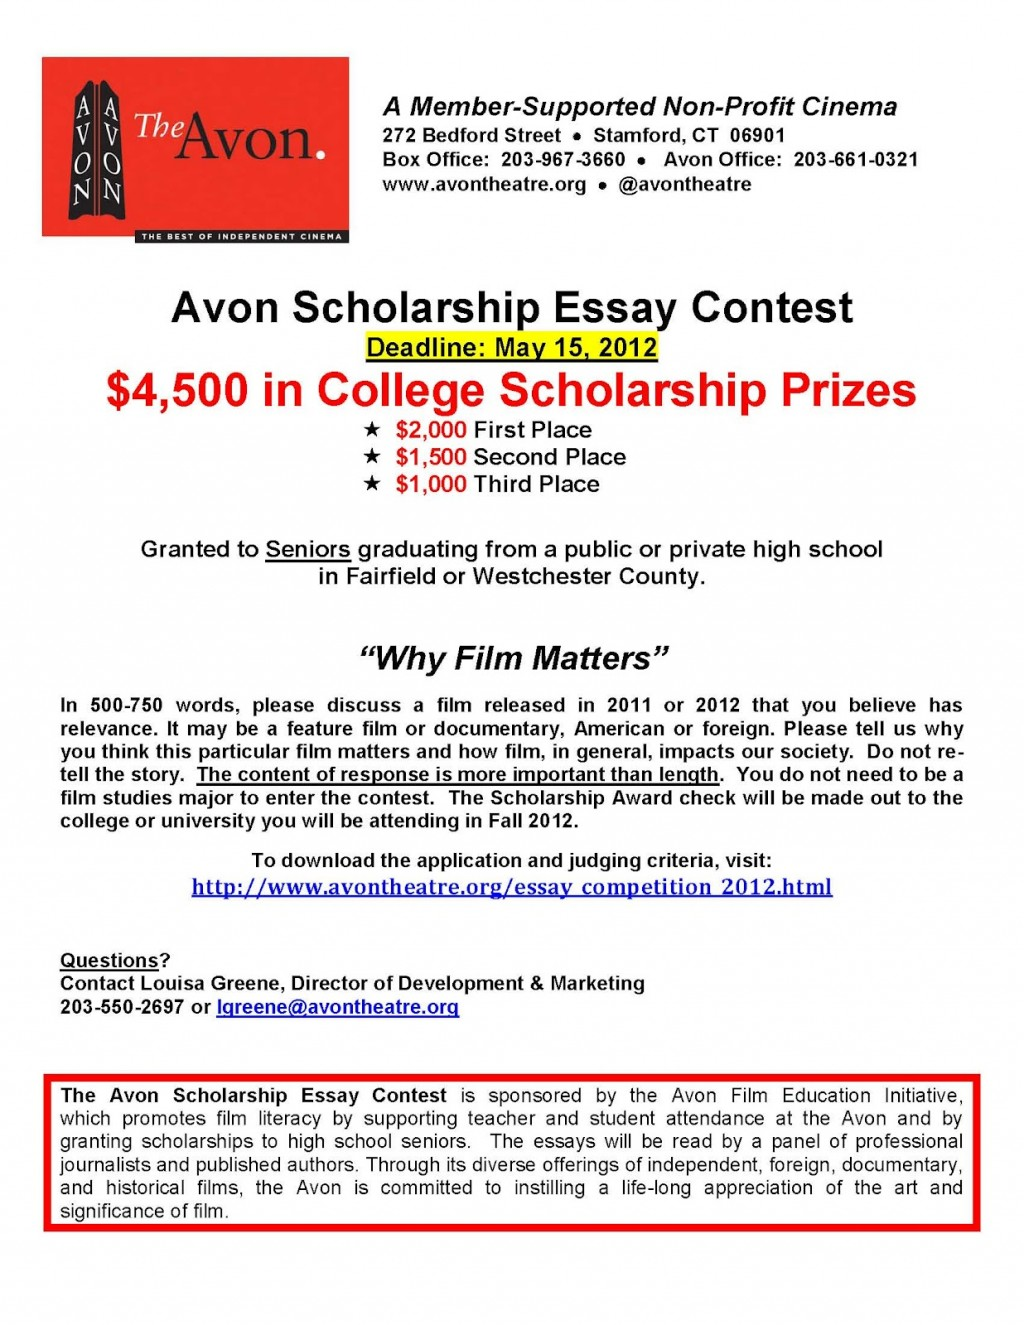 016 Avonscholarshipessaycontest2012flyer Essay Example Shocking Scholarships 2018 For International Students Examples Canada 2019 Large